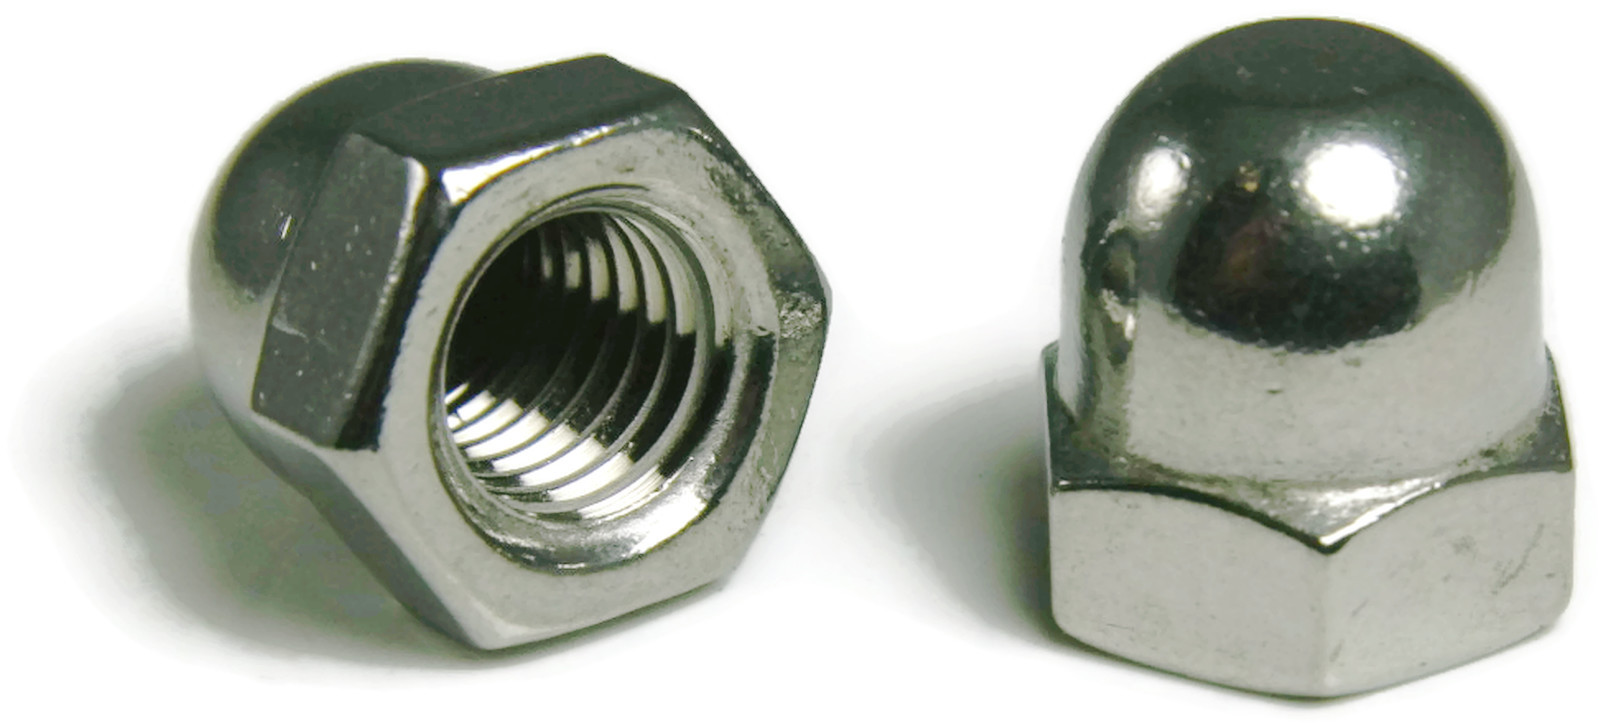 10-32 Stainless Steel Cap Acorn Hex Nuts UNF Grade 18-8 Qty 1000 304